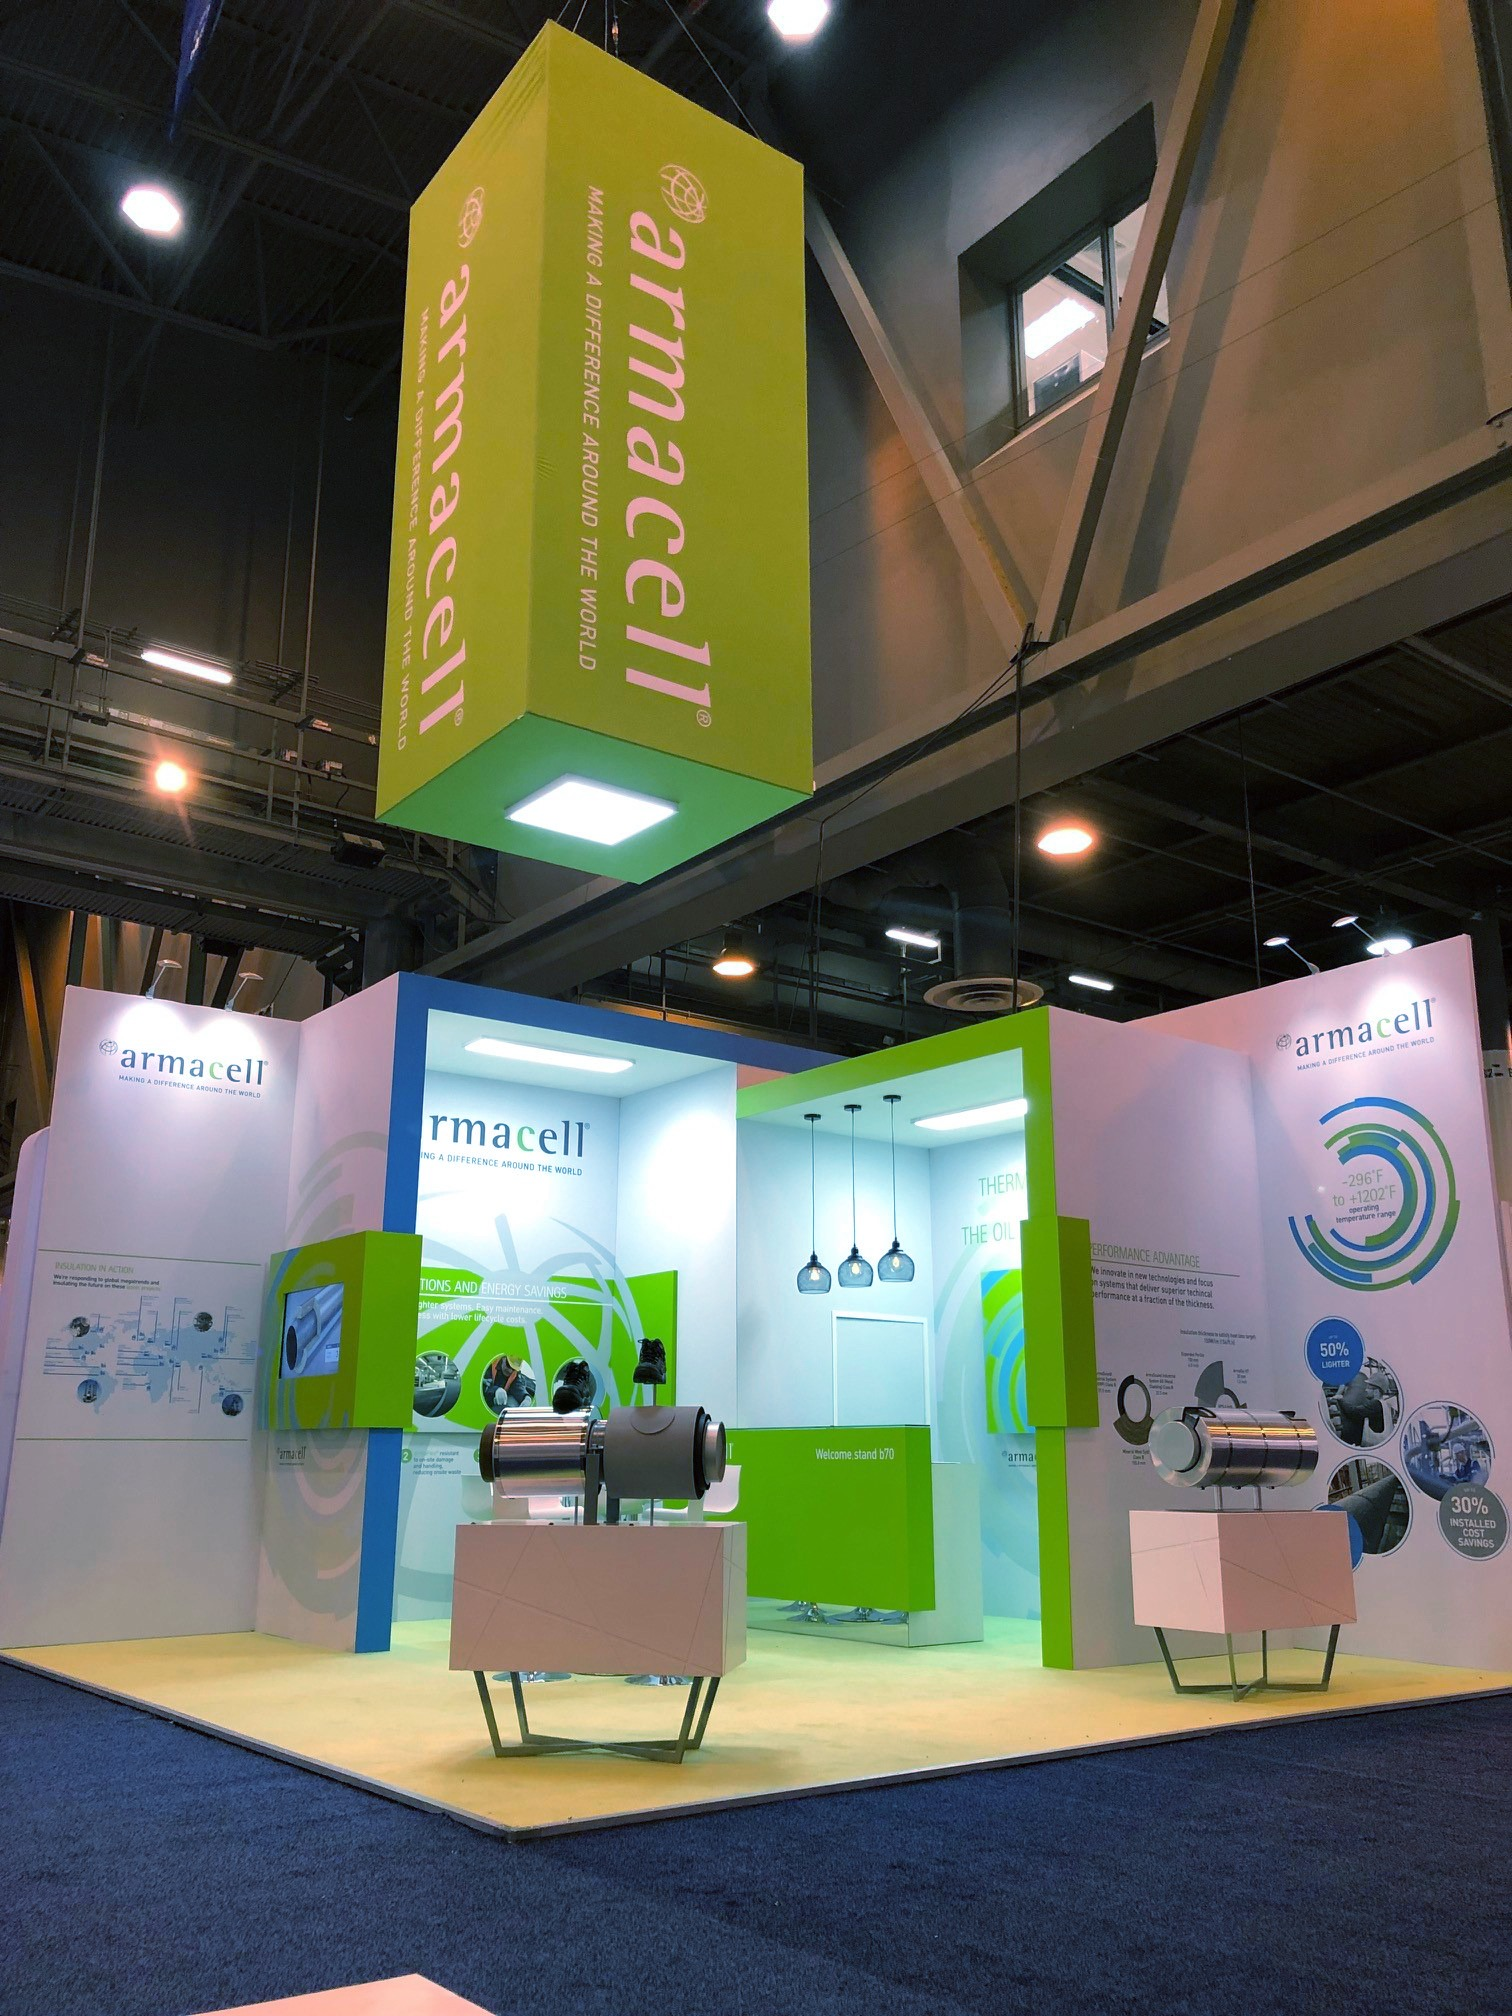 armacell stand